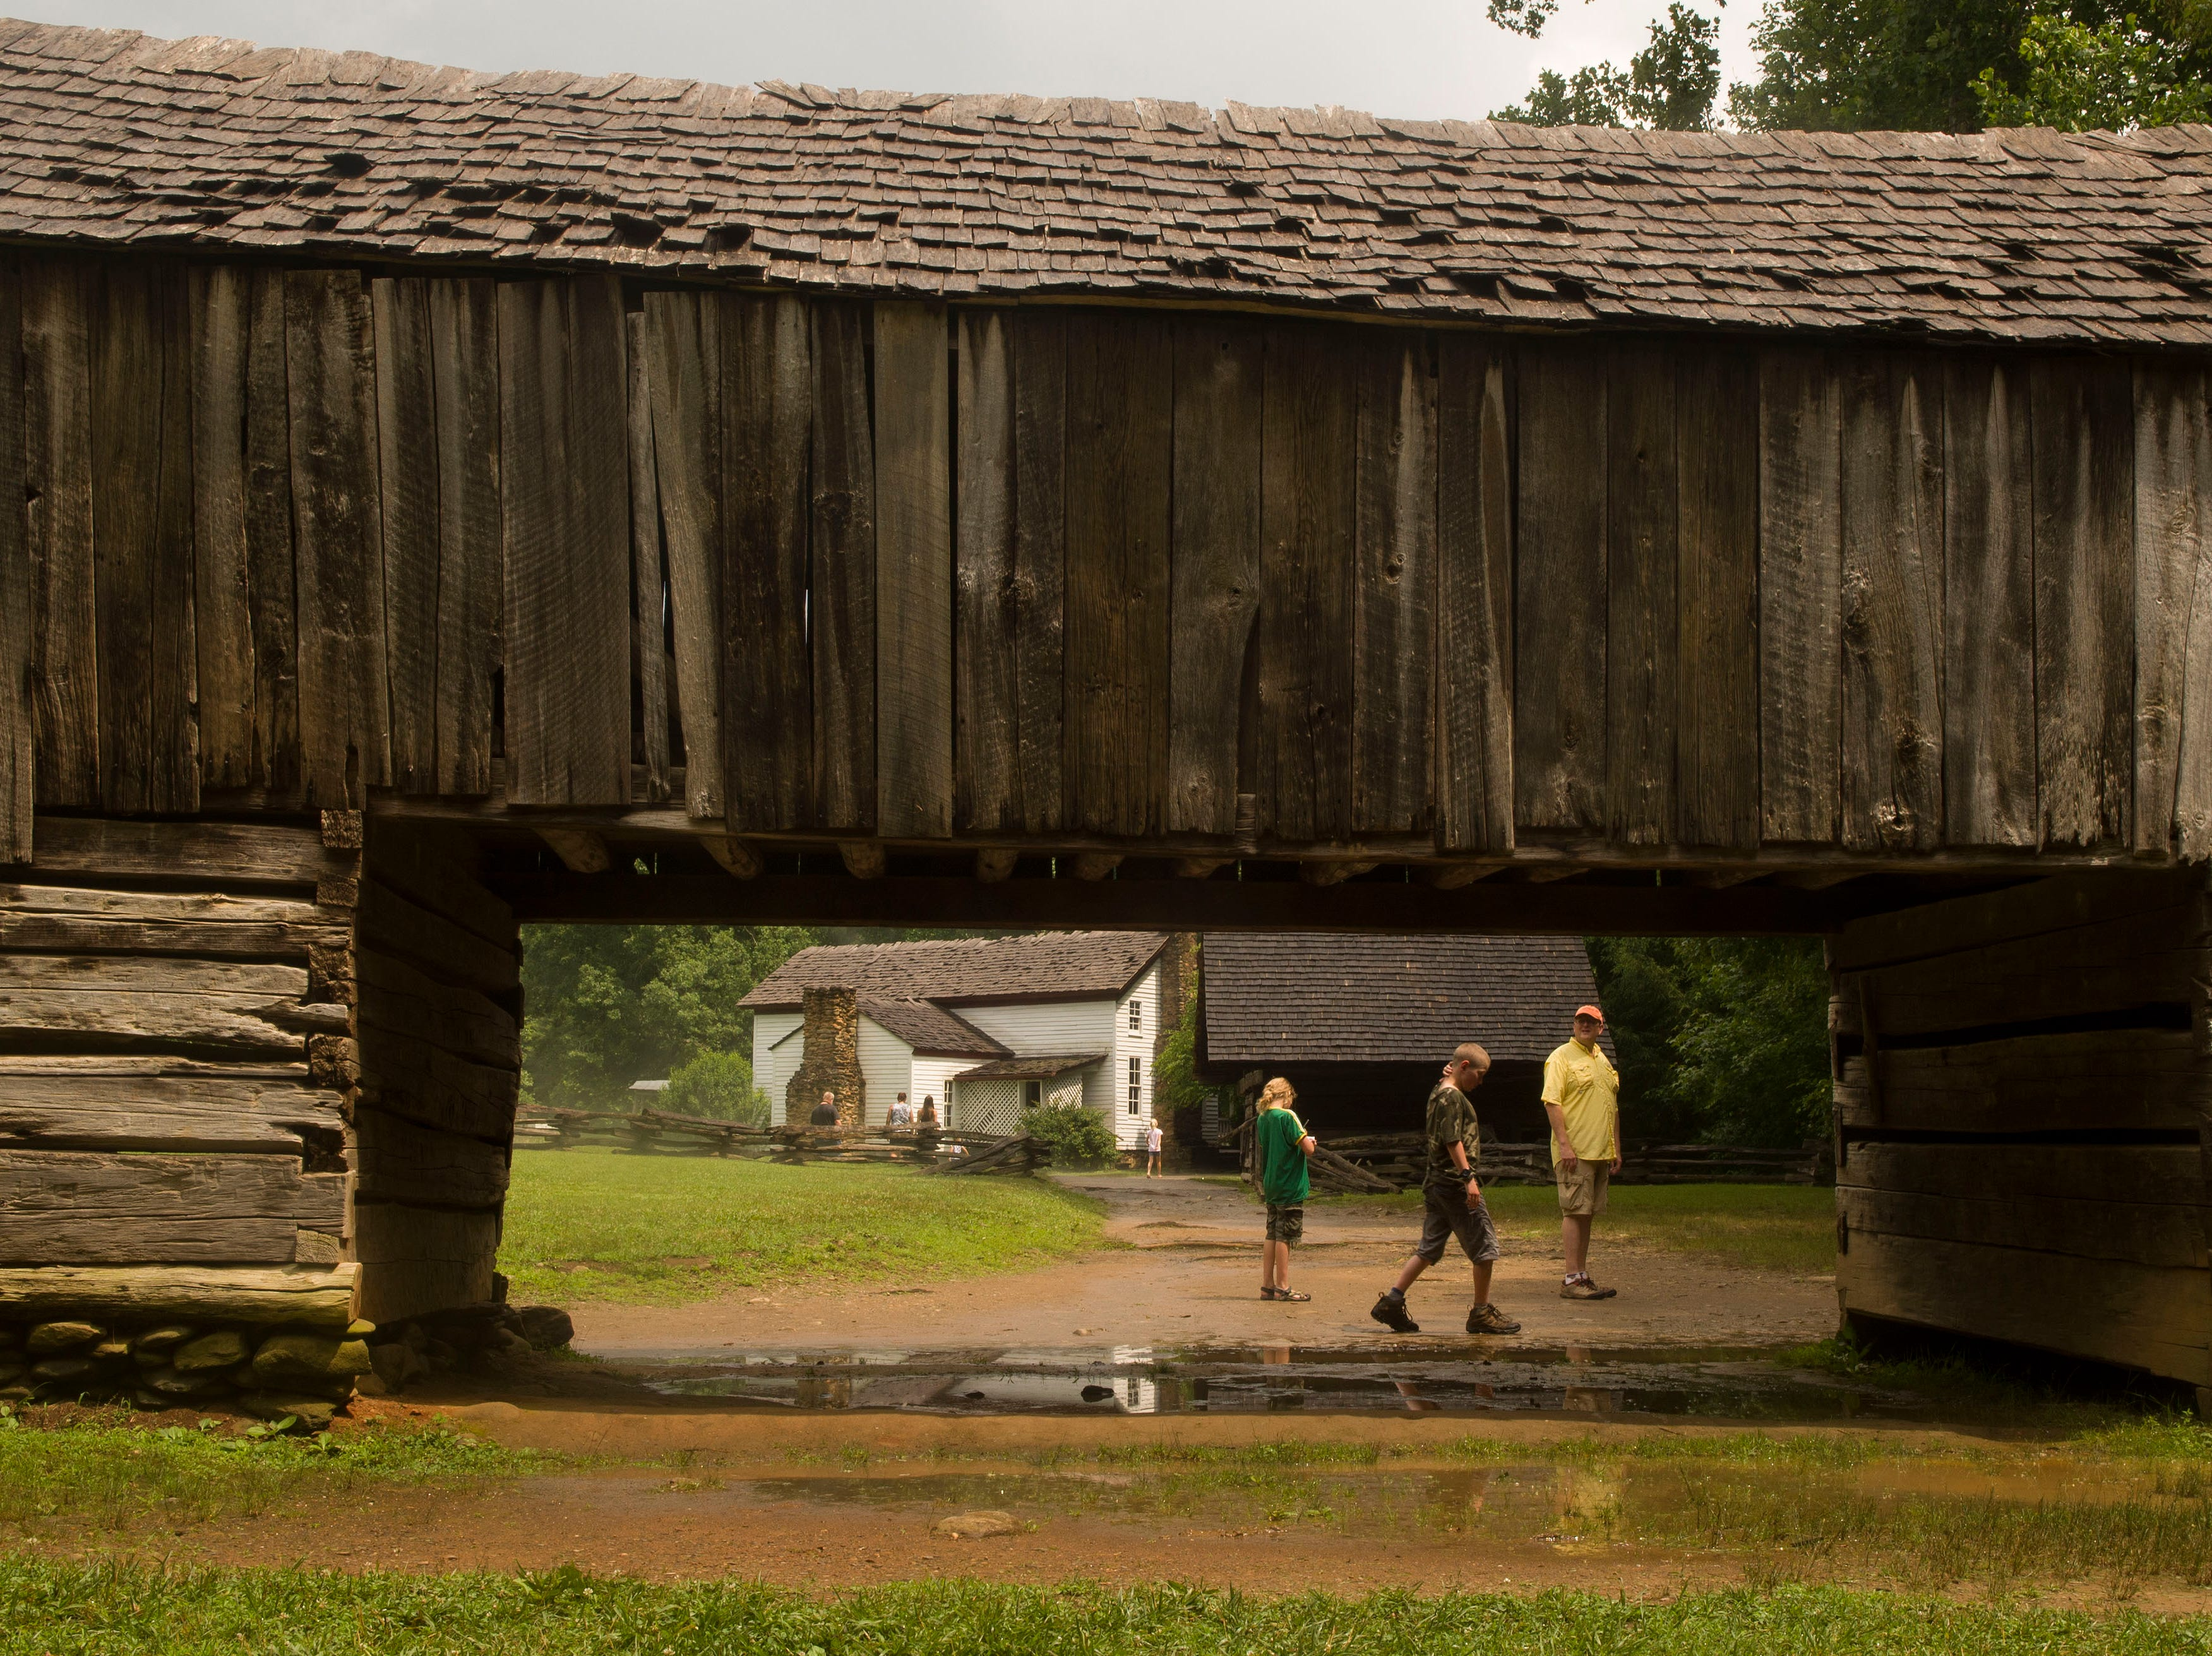 A barn and out buildings at the Greg-Cable house, and Grist mill in Cades Cove Wednesday, June 25, 2014Sevierville businessman offers biplane rides.(J. MILES CARY/NEWS SENTINEL)